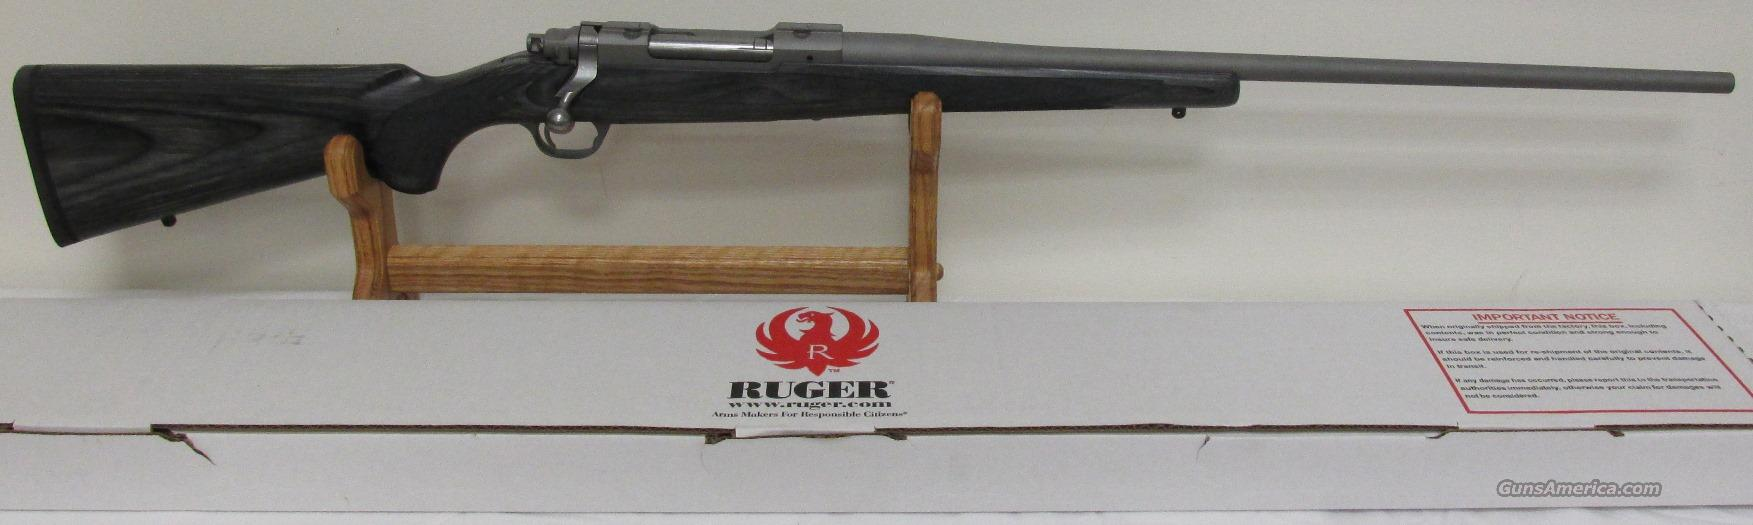 Ruger M77 Hawkeye Sporter SS 7mm Rem Mag NIB #17190 (SS Matte Scope Rings Included)   Guns > Rifles > Ruger Rifles > Model 77